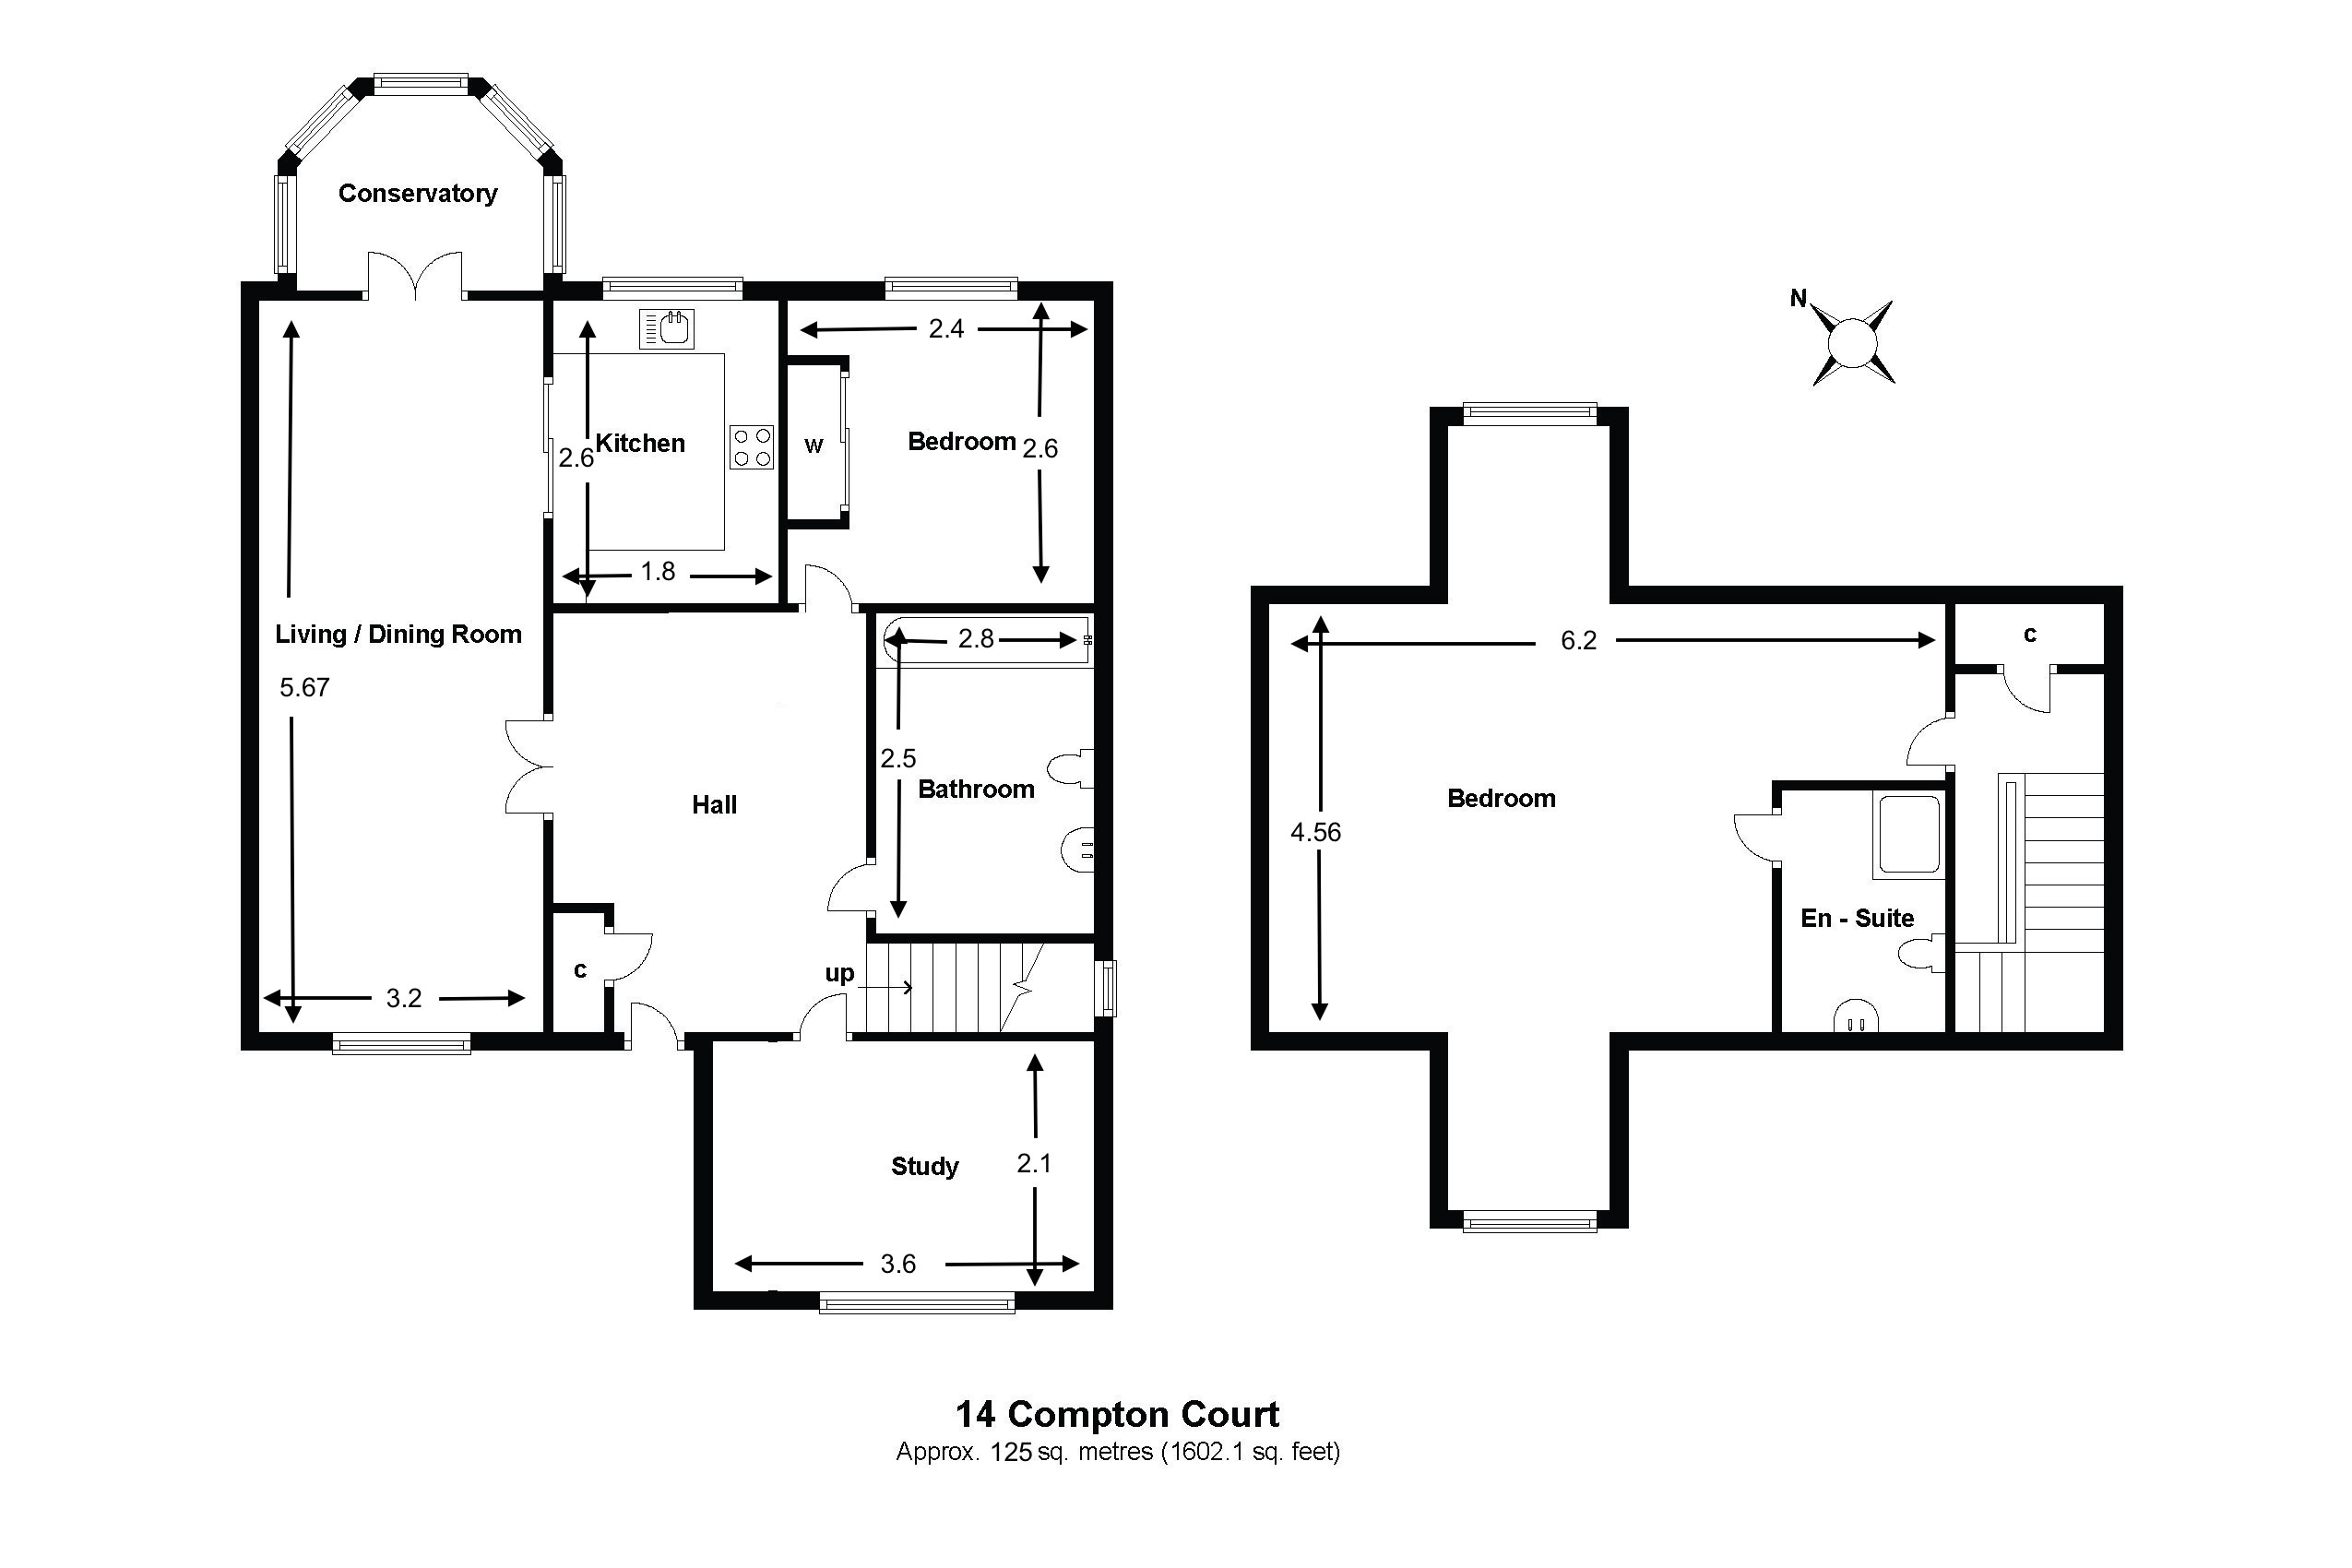 14 Compton Court Floorplan